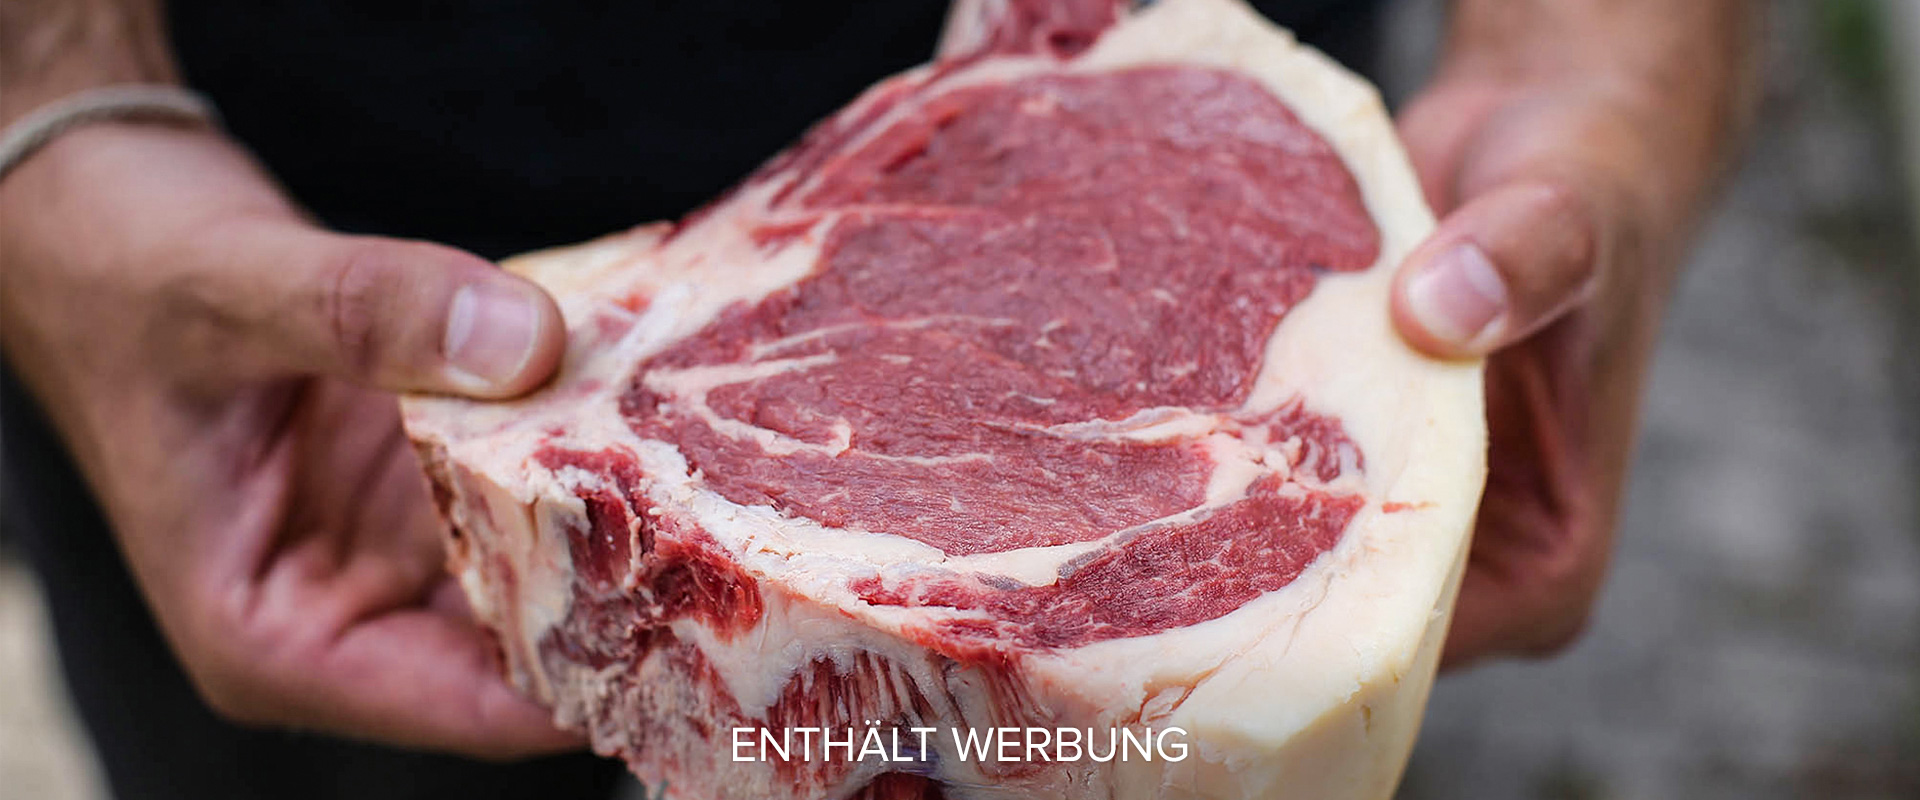 BBQ-Basics: Das perfekte Tomahawk-Steak